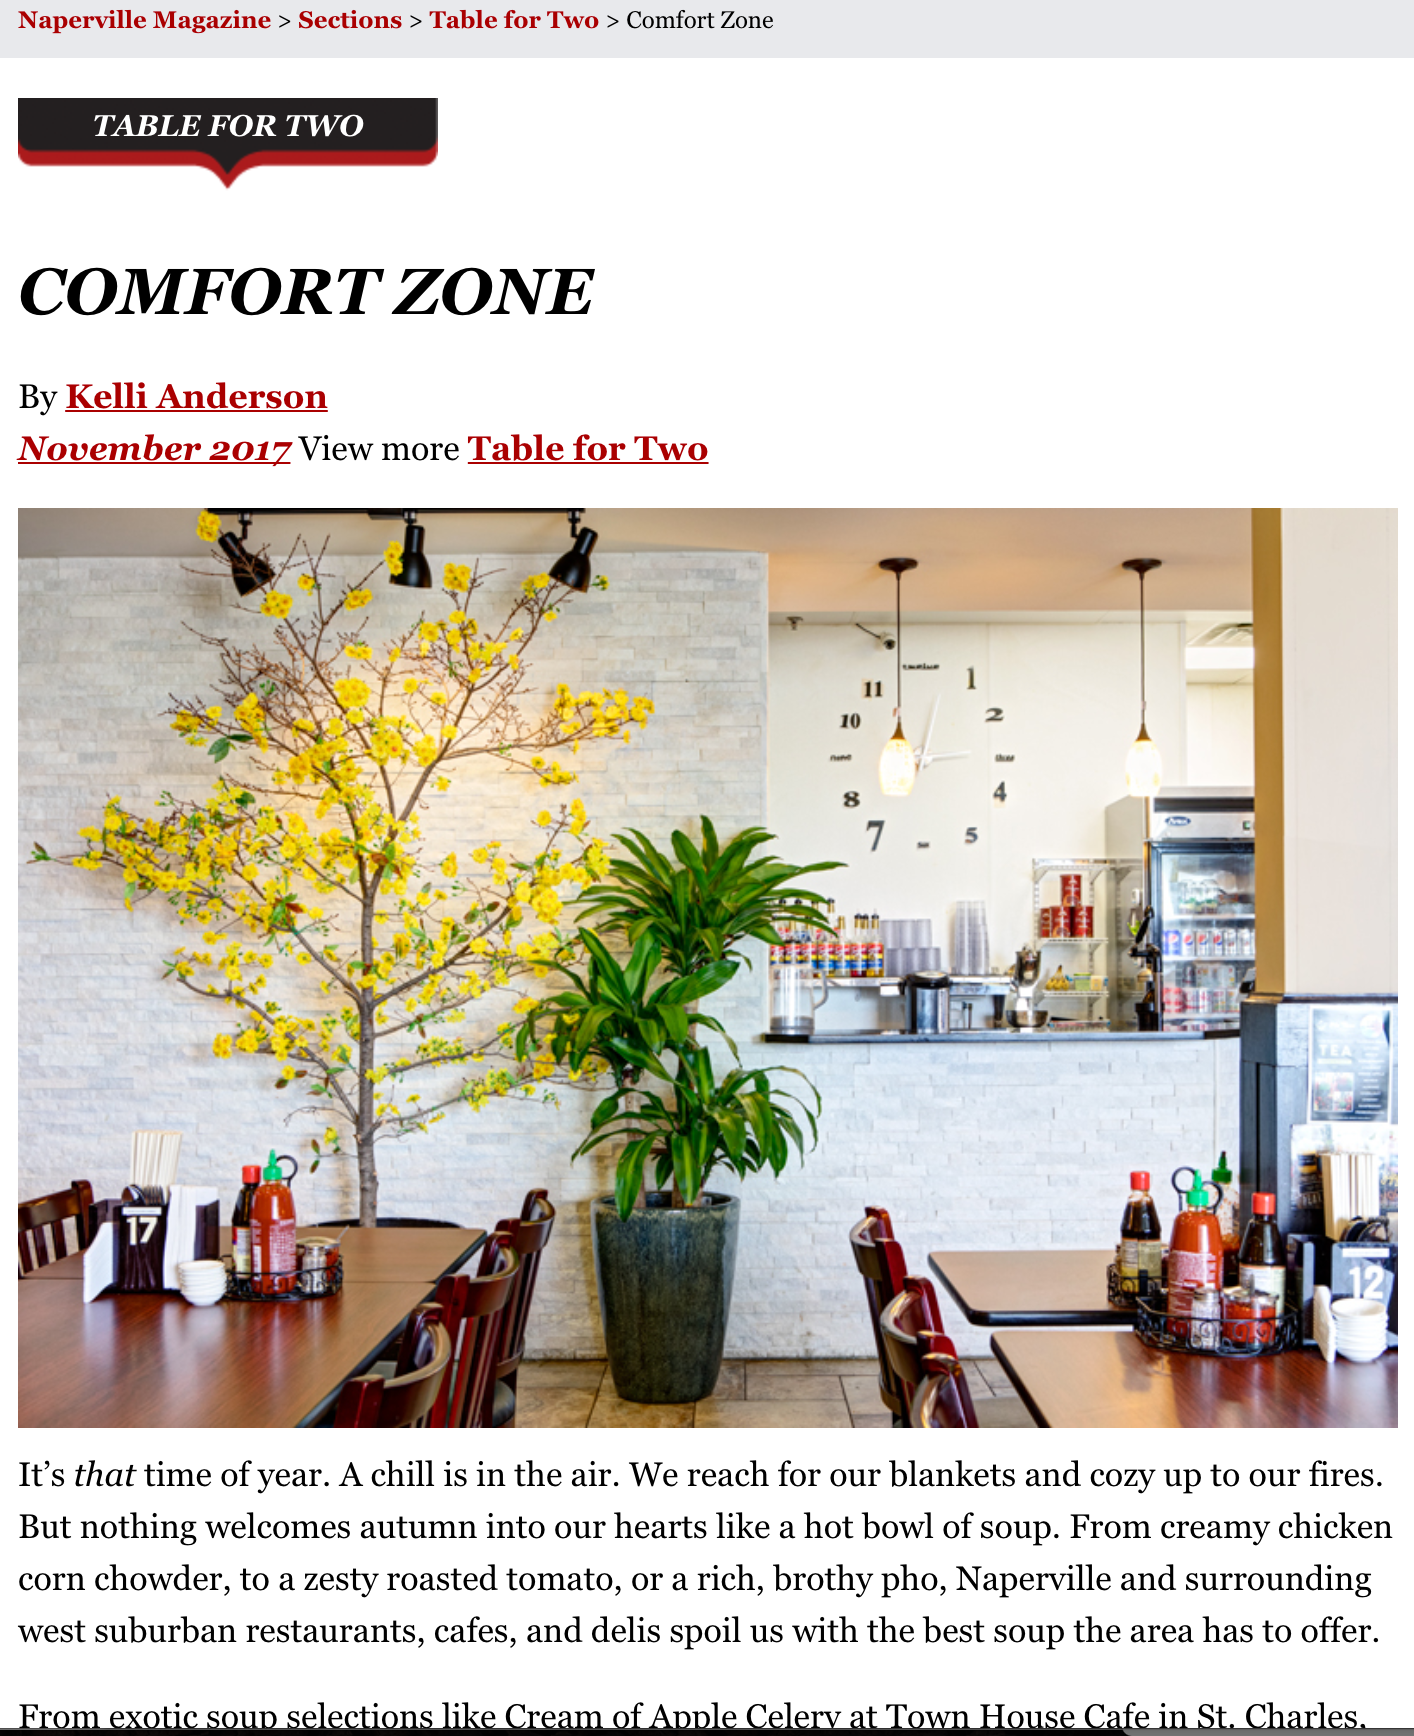 """Thank you to Kelli Anderson and Naperville Magazine for featuring our restaurant in the Naperville Magazine November Issue. The """"Table for Two"""" section was about local soups in the area. Out of three local restaurants featured in the article Pho Thien was the first restaurant mentioned and the only one to have a picture. We are so blessed!   http://napervillemagazine.com/2017/10/comfort-zone/"""